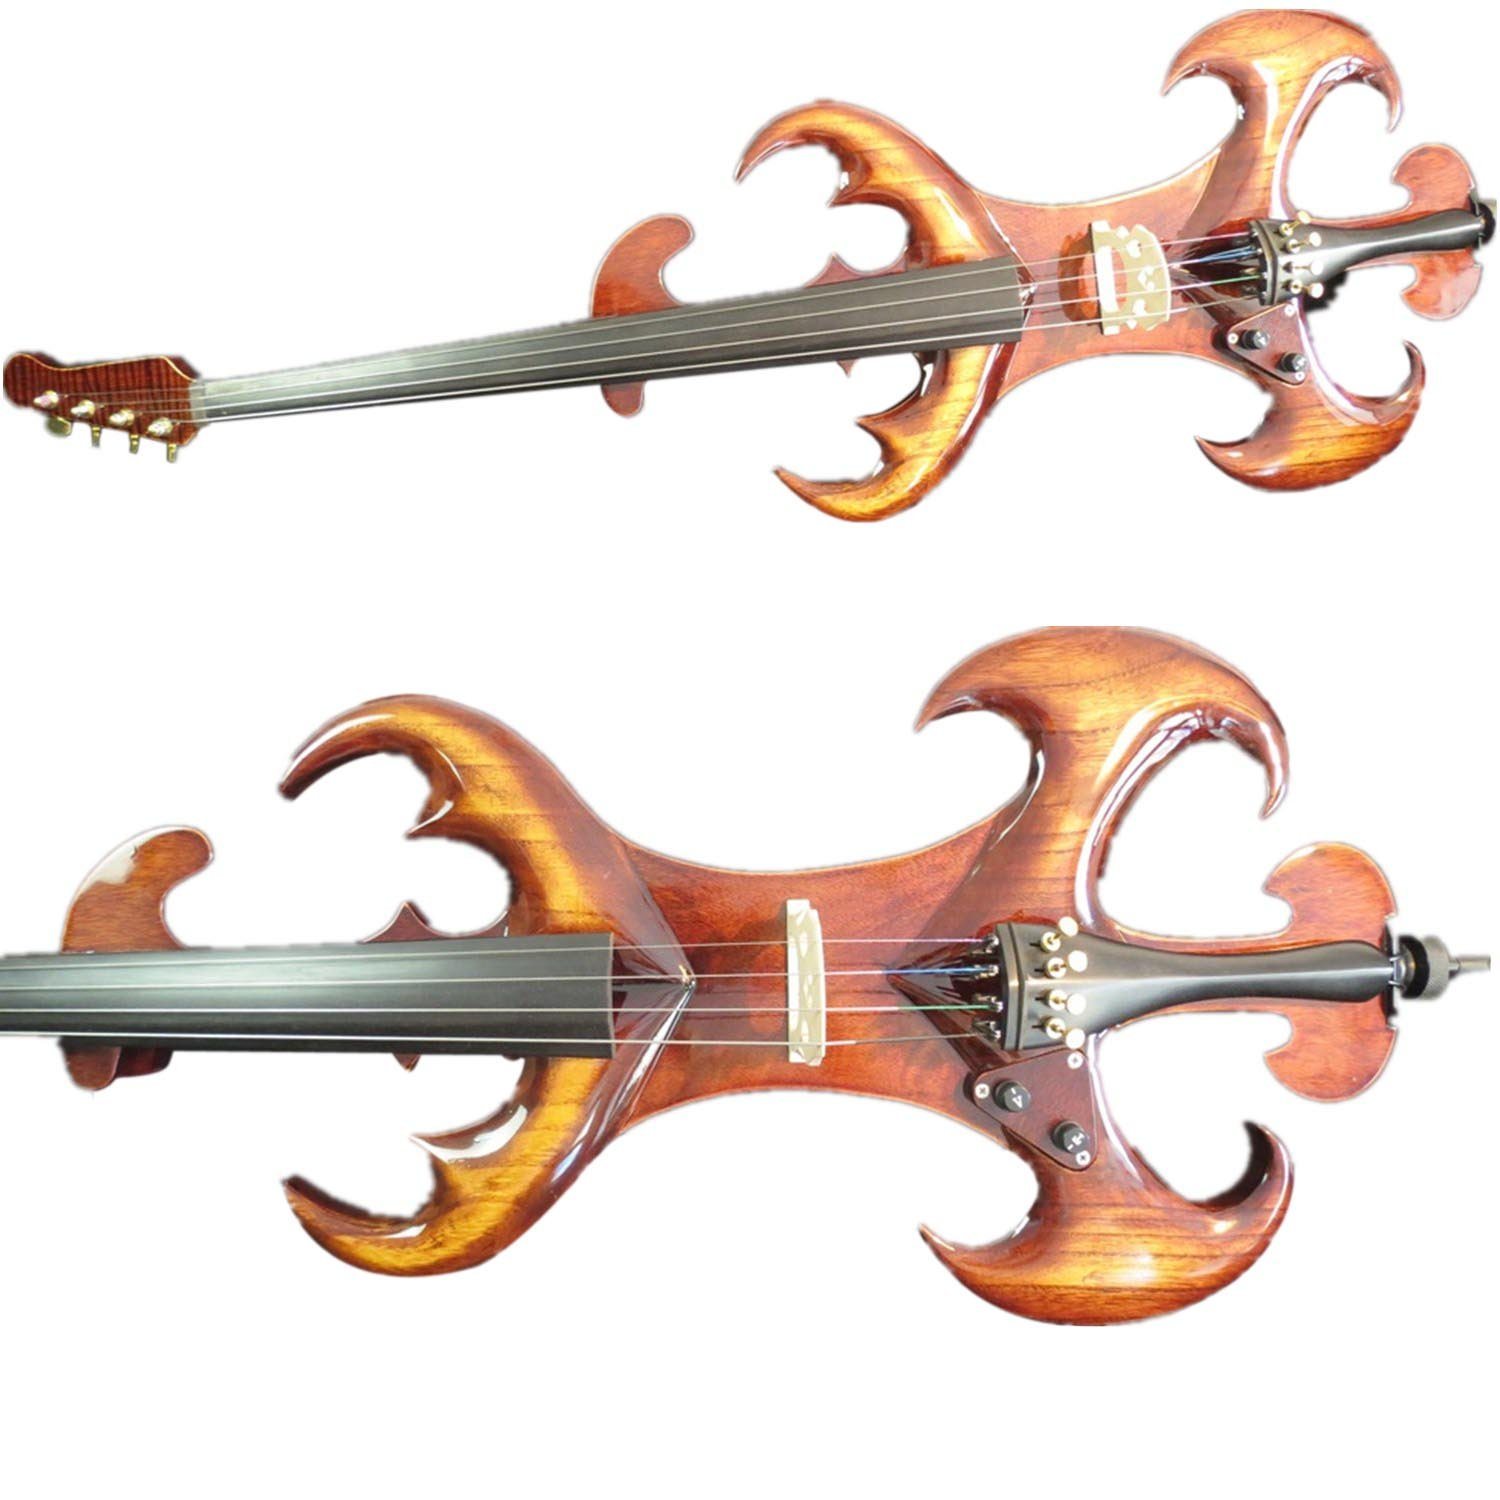 SONG Electric Cello 4/4,Brown Color Hand Made Solid Wood Free Case Bow,Rosin Cable